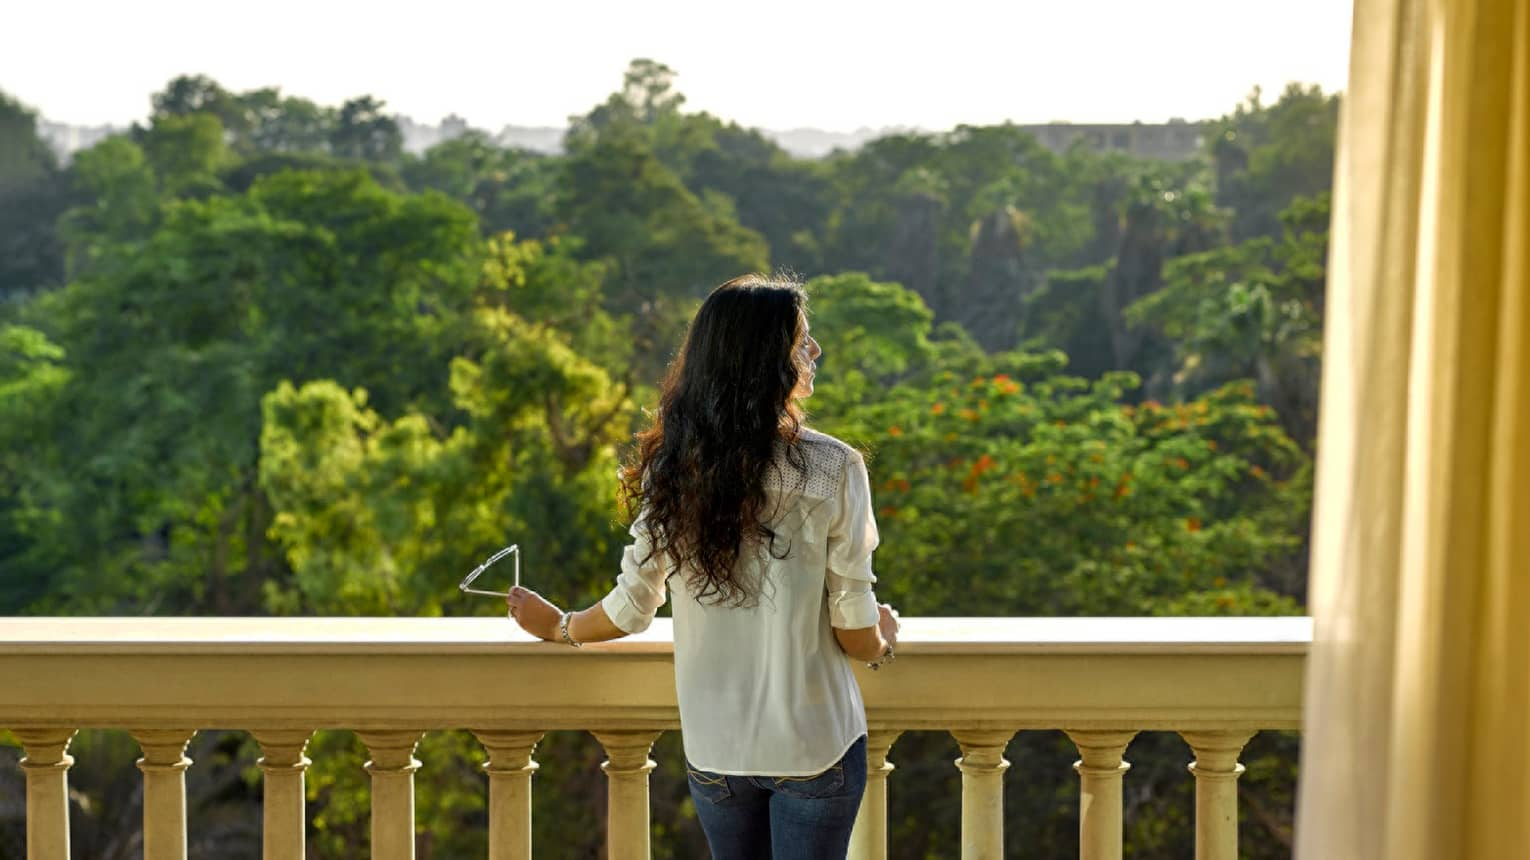 Woman in jeans, button-up shirt looks out over balcony at green zoological gardens canopy